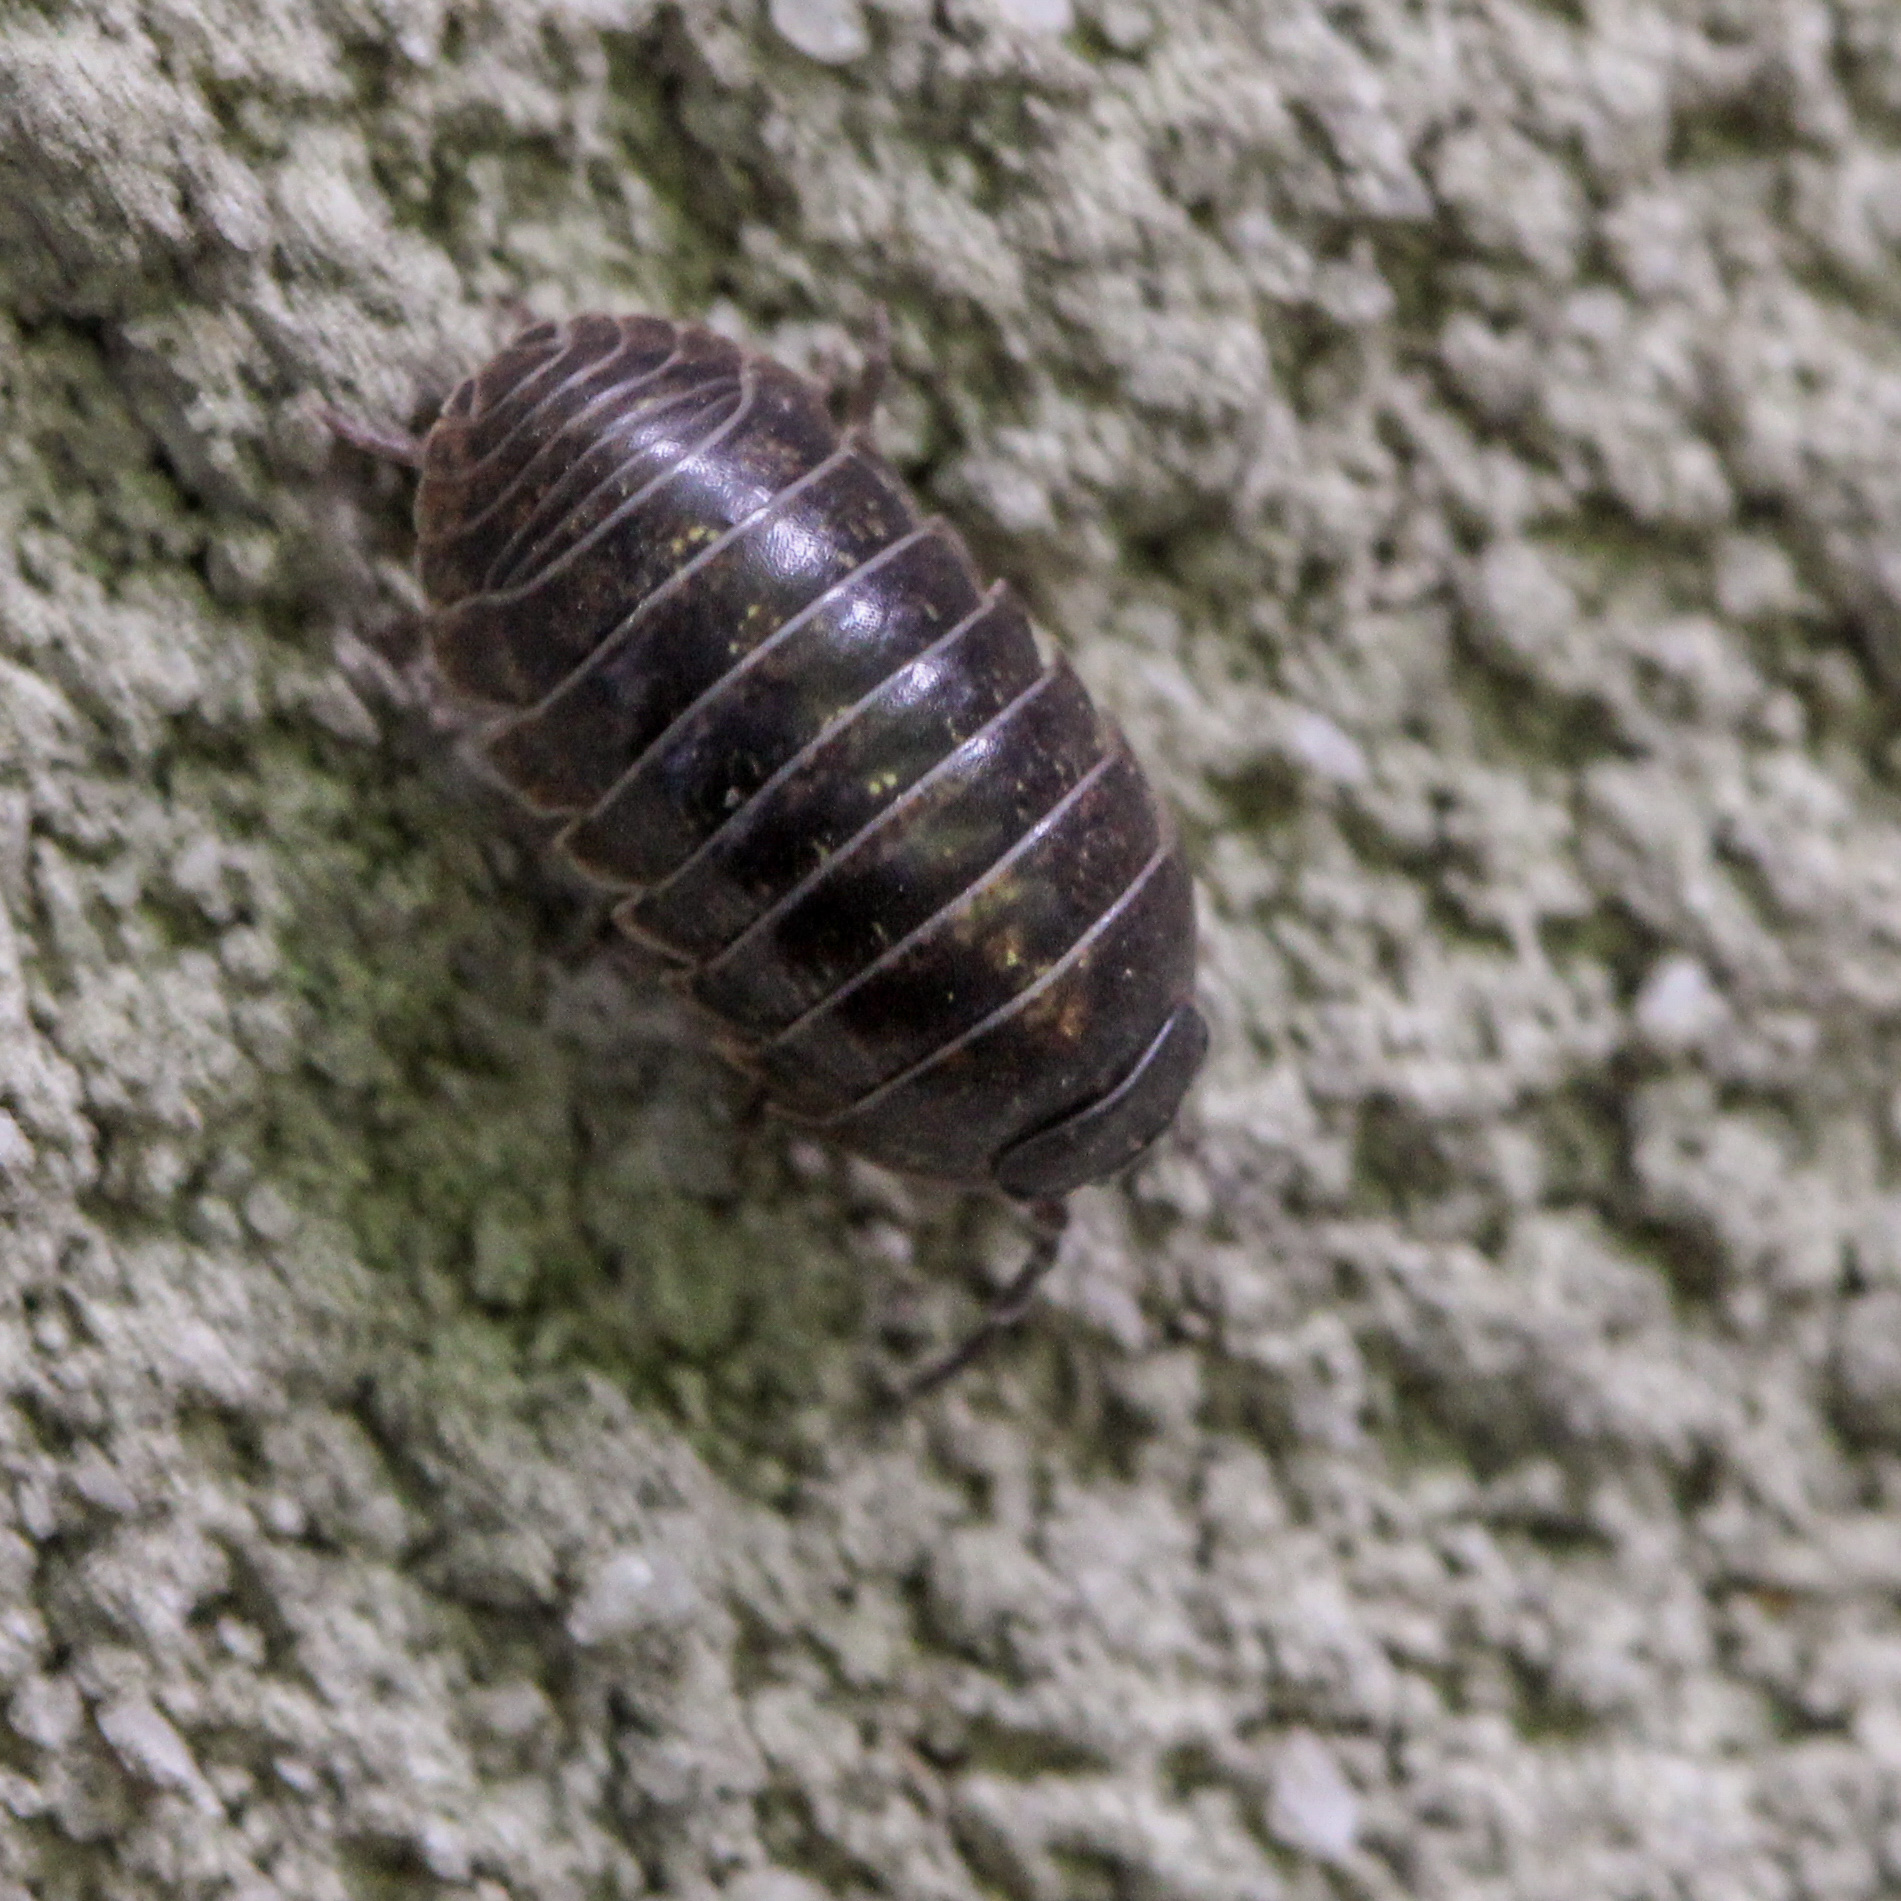 Leather jacket insect - A Pill Bug On A Stucco Wall